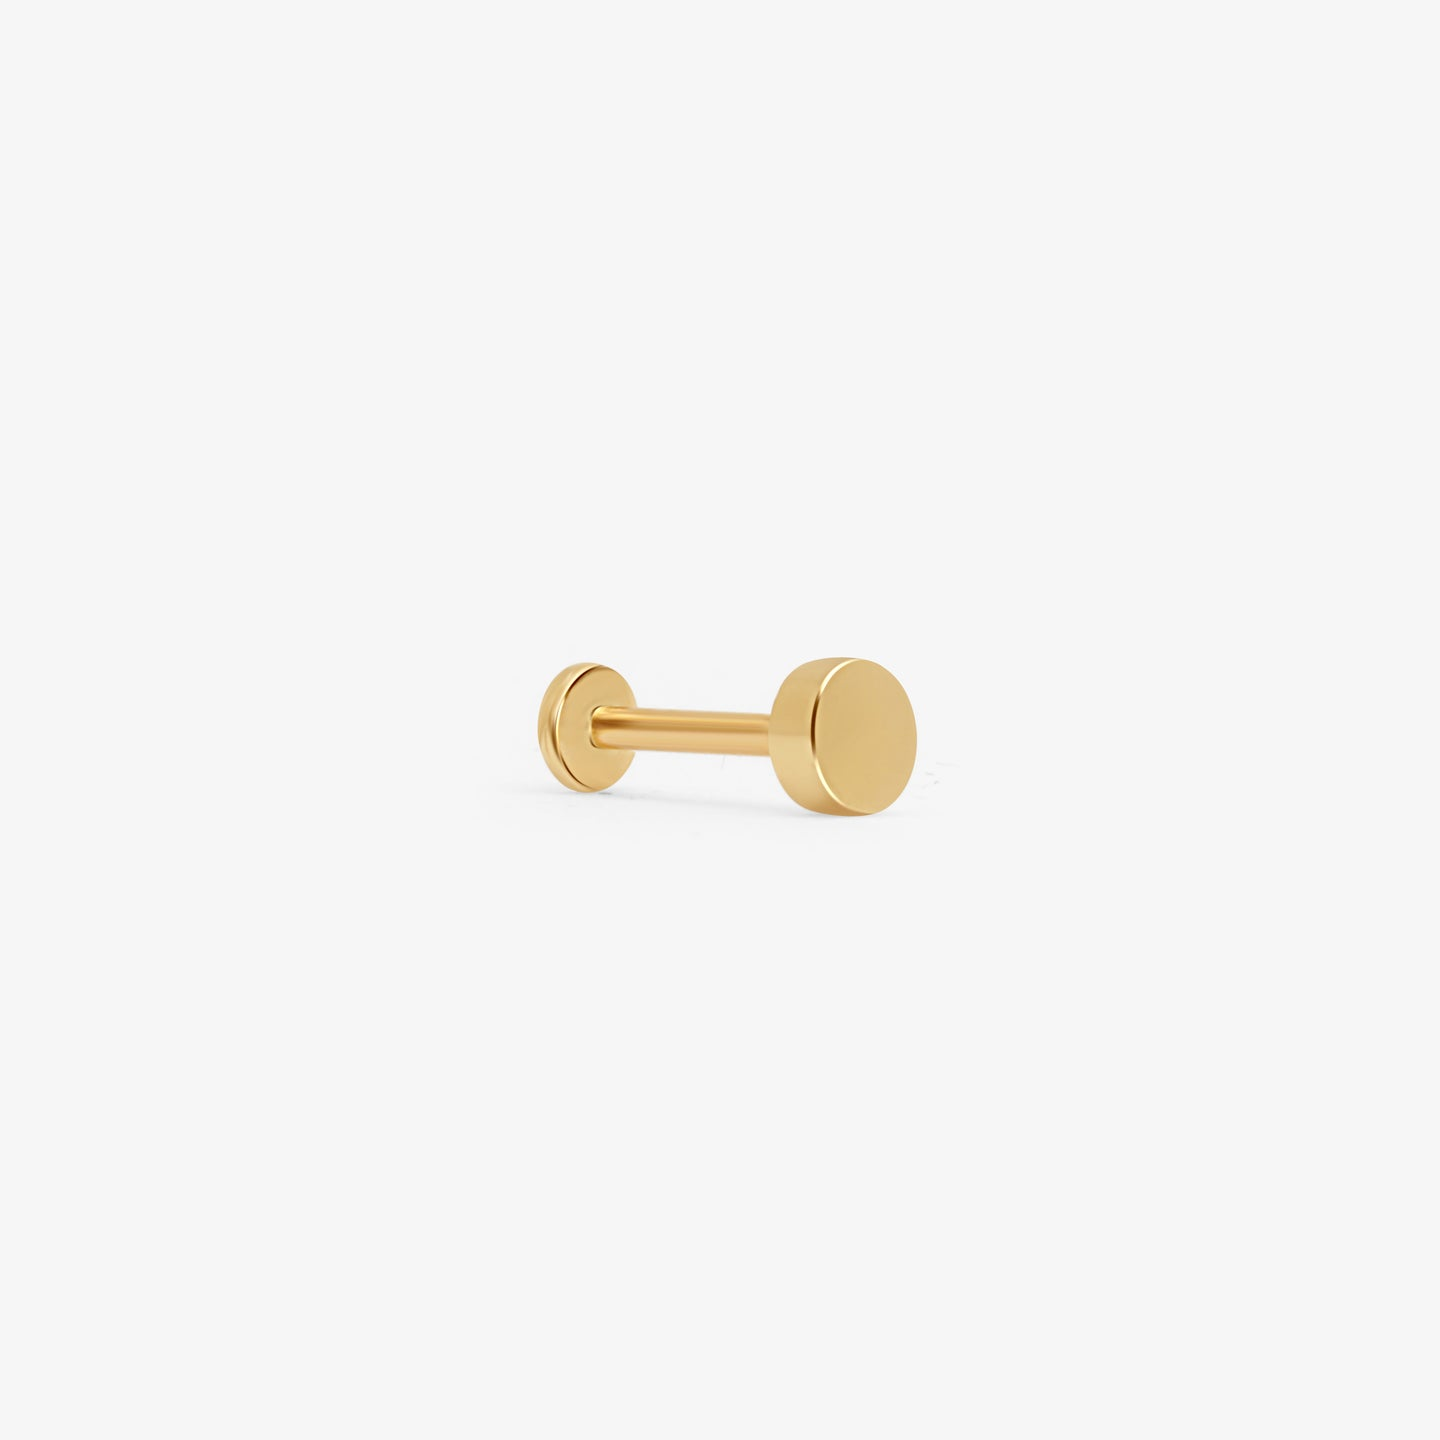 Petite Disc Threaded Stud Earrings | 14k Gold | Upper Ear Piercings